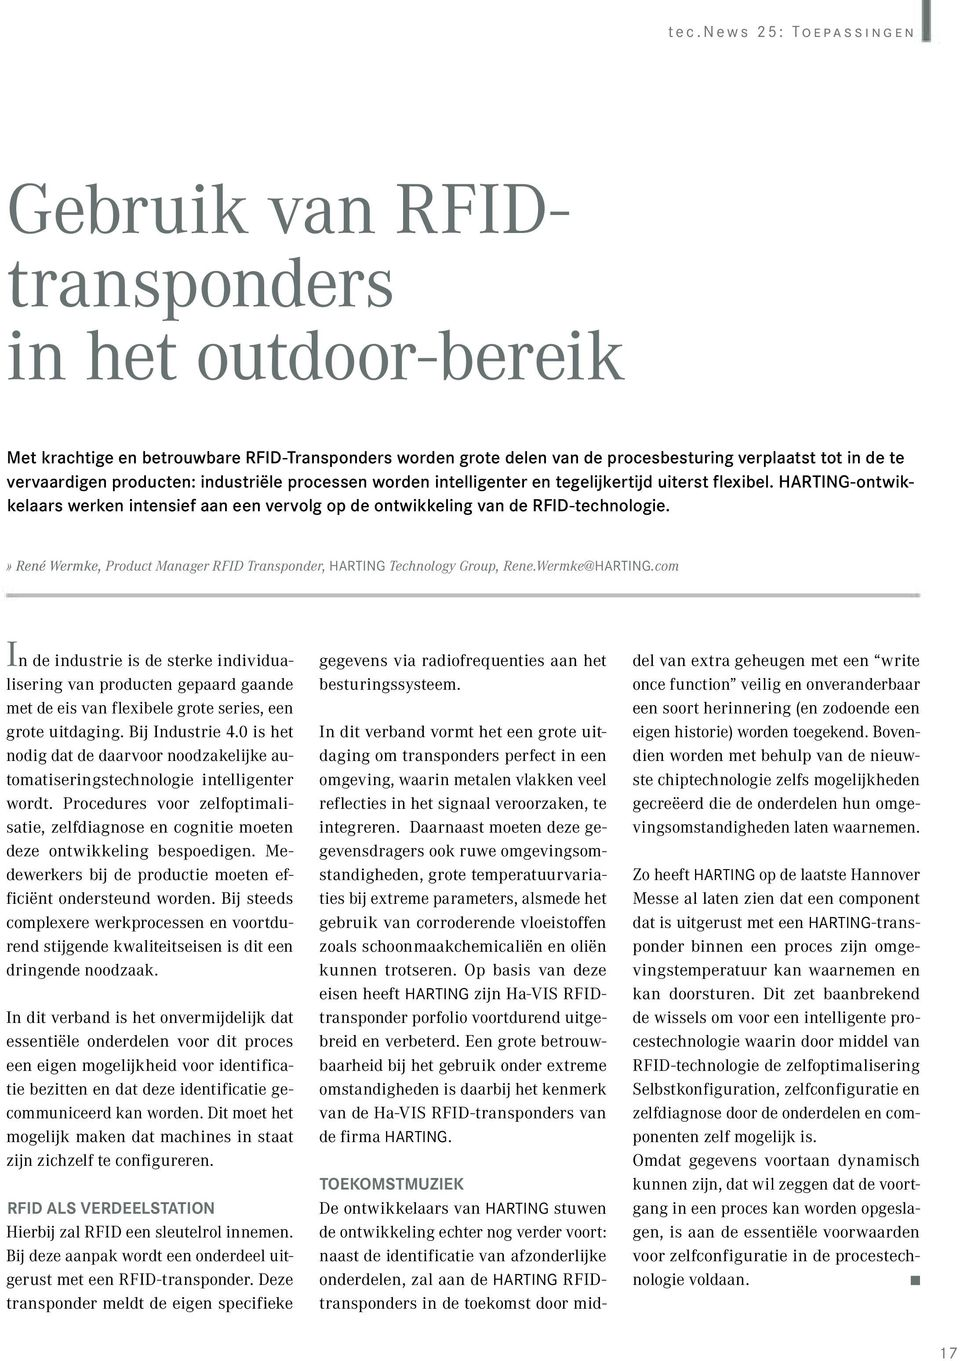 HARTING-ontwikkelaars werken intensief aan een vervolg op de ontwikkeling van de RFID-technologie.» René Wermke, Product Manager RFID Transponder, HARTING Technology Group, Rene.Wermke@HARTING.